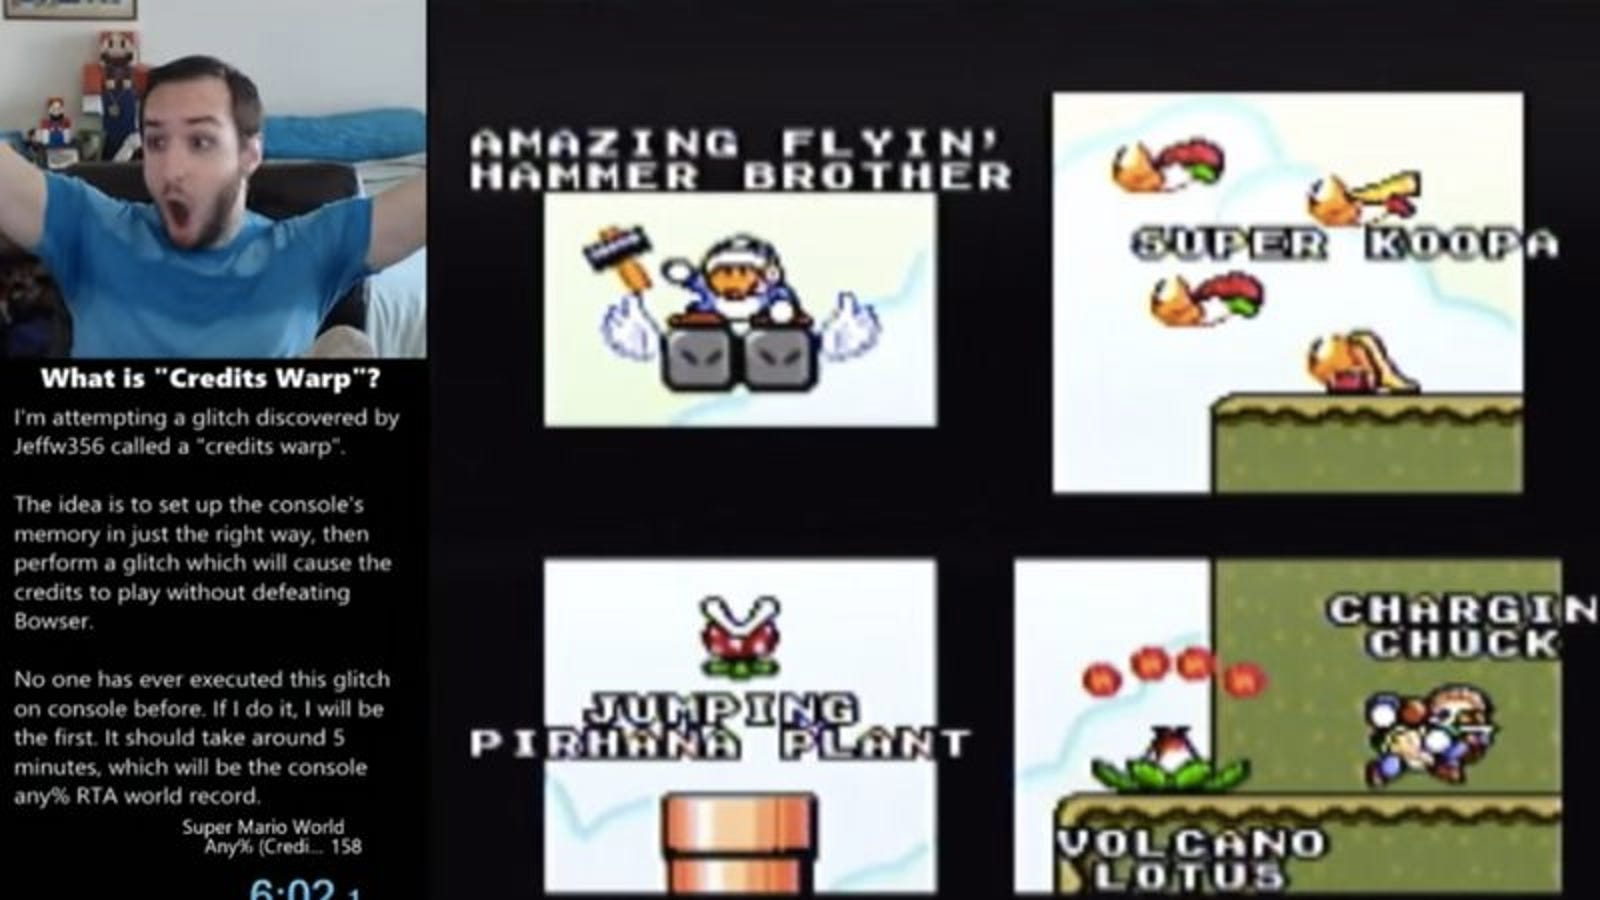 A speedrunner tricked Super Mario World into ending in 6 minutes